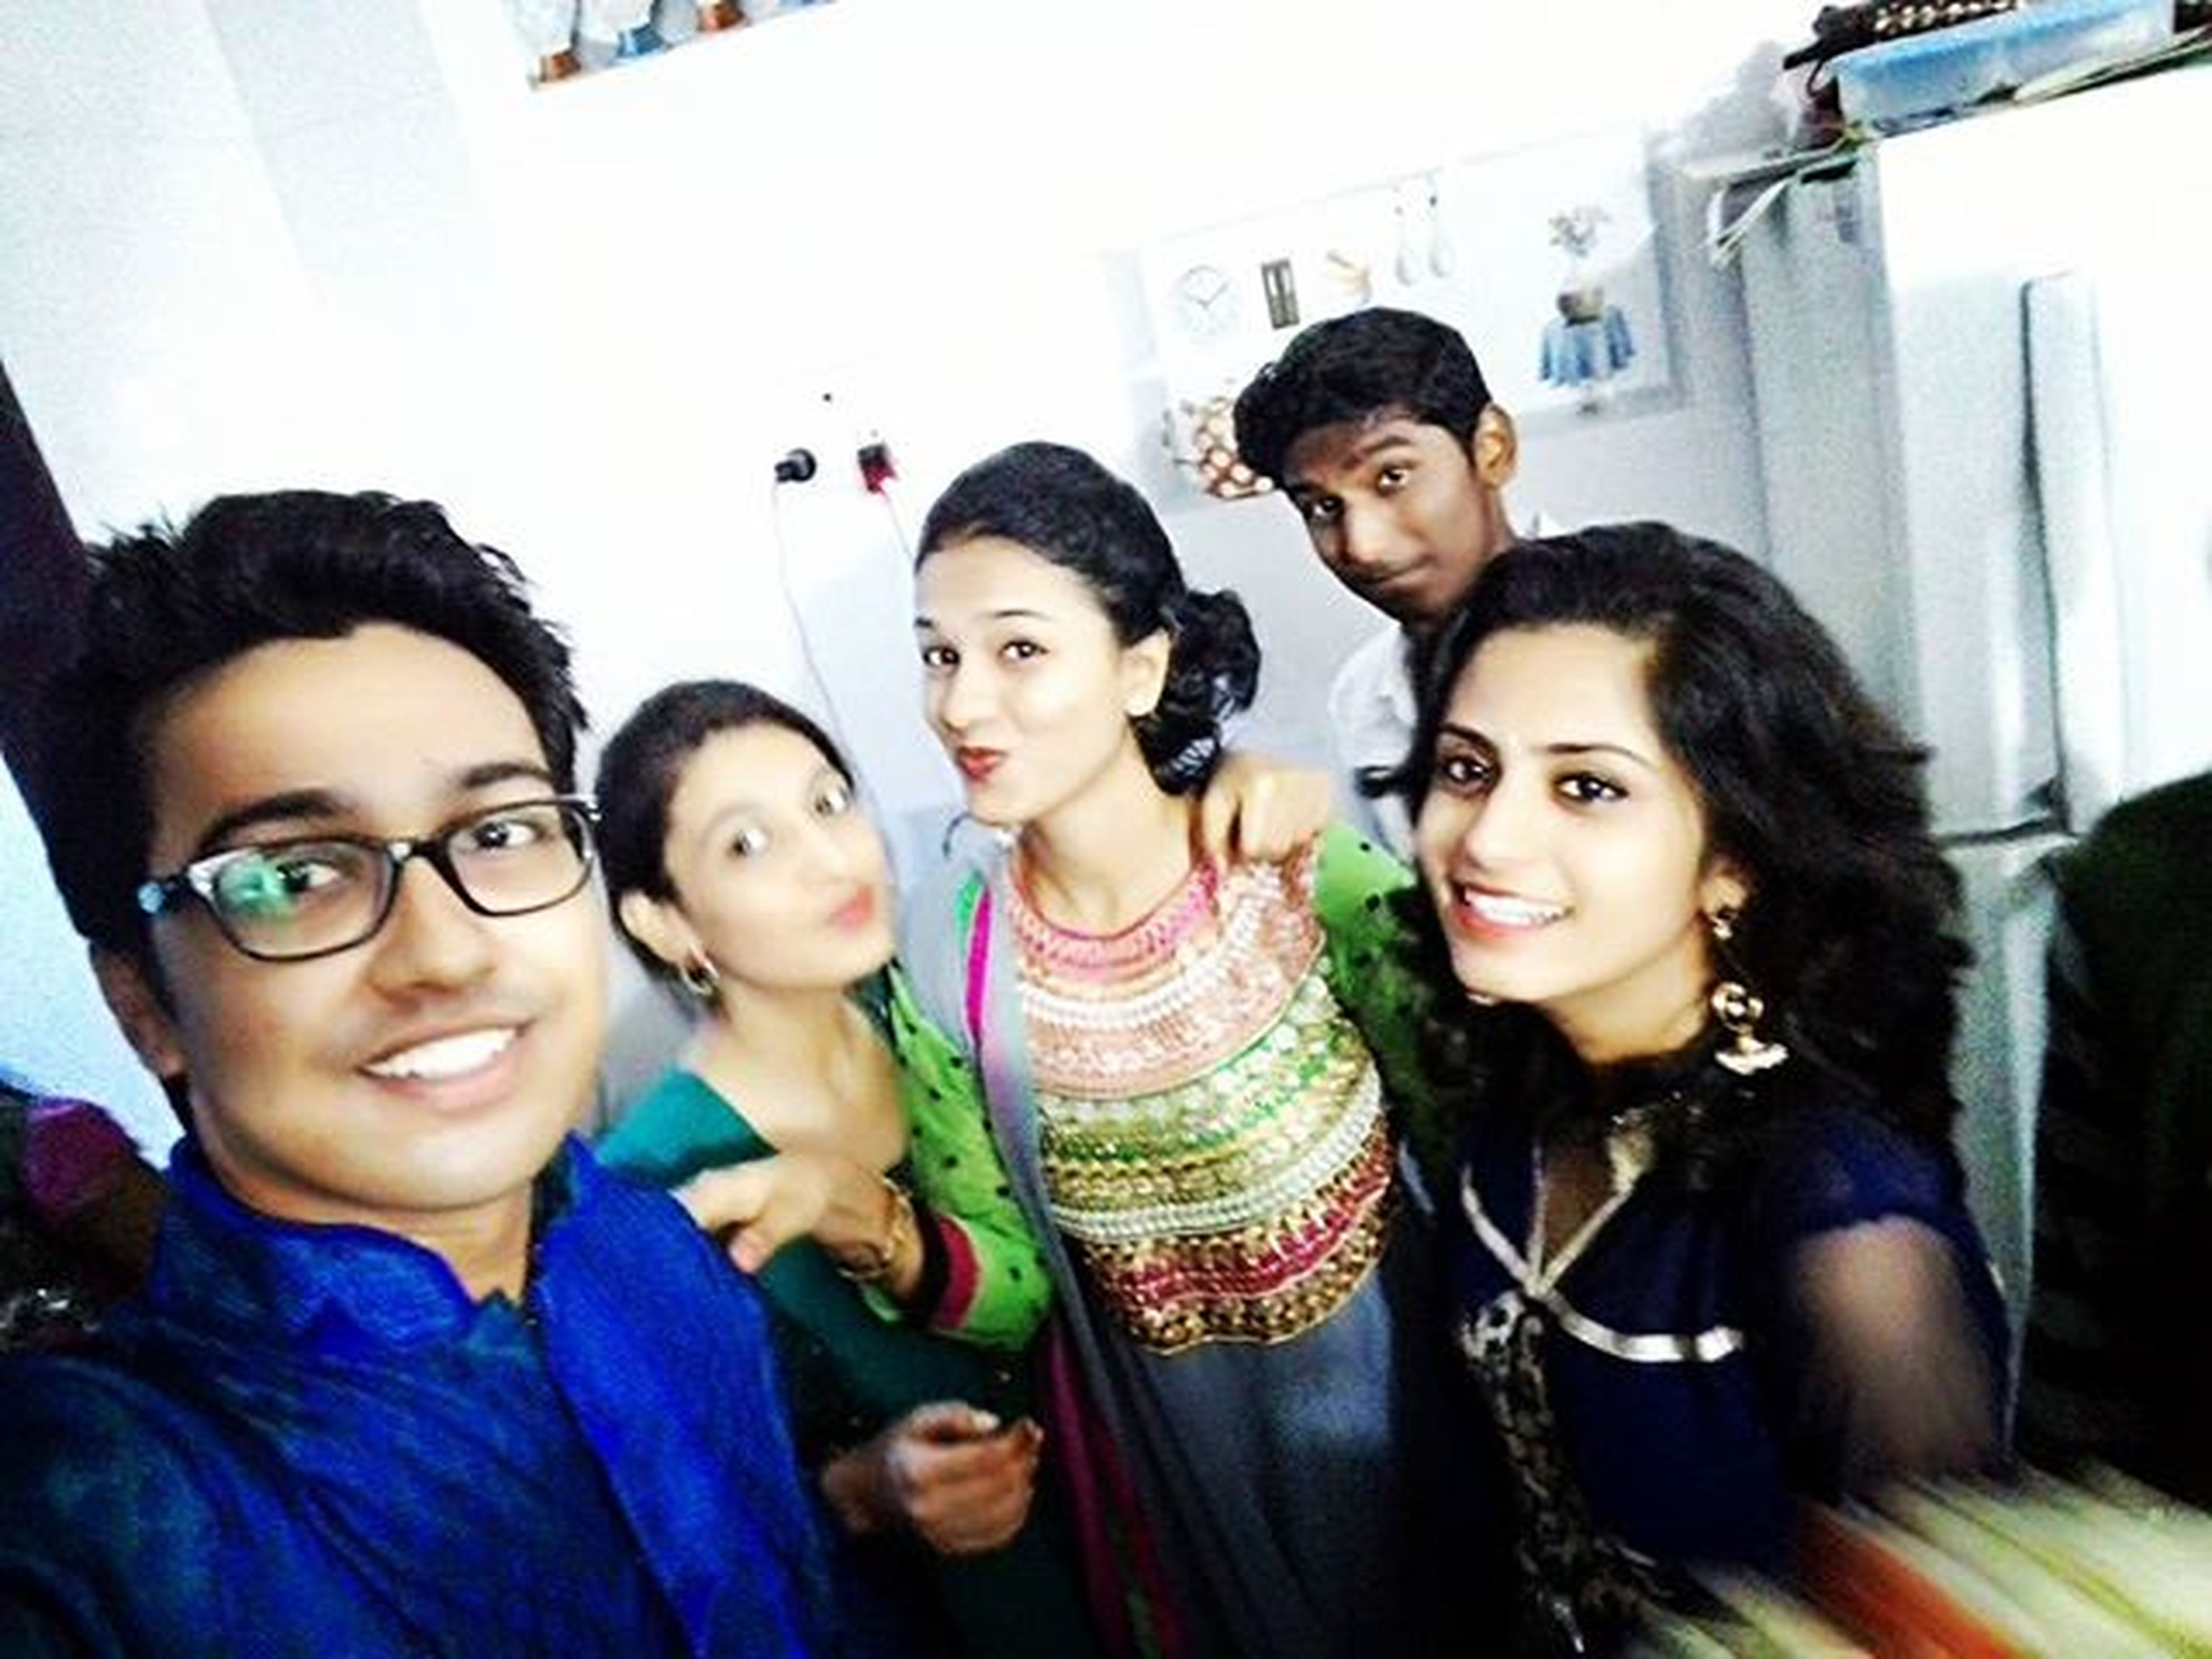 togetherness, lifestyles, person, bonding, leisure activity, portrait, looking at camera, indoors, young adult, smiling, happiness, friendship, front view, love, young women, casual clothing, fun